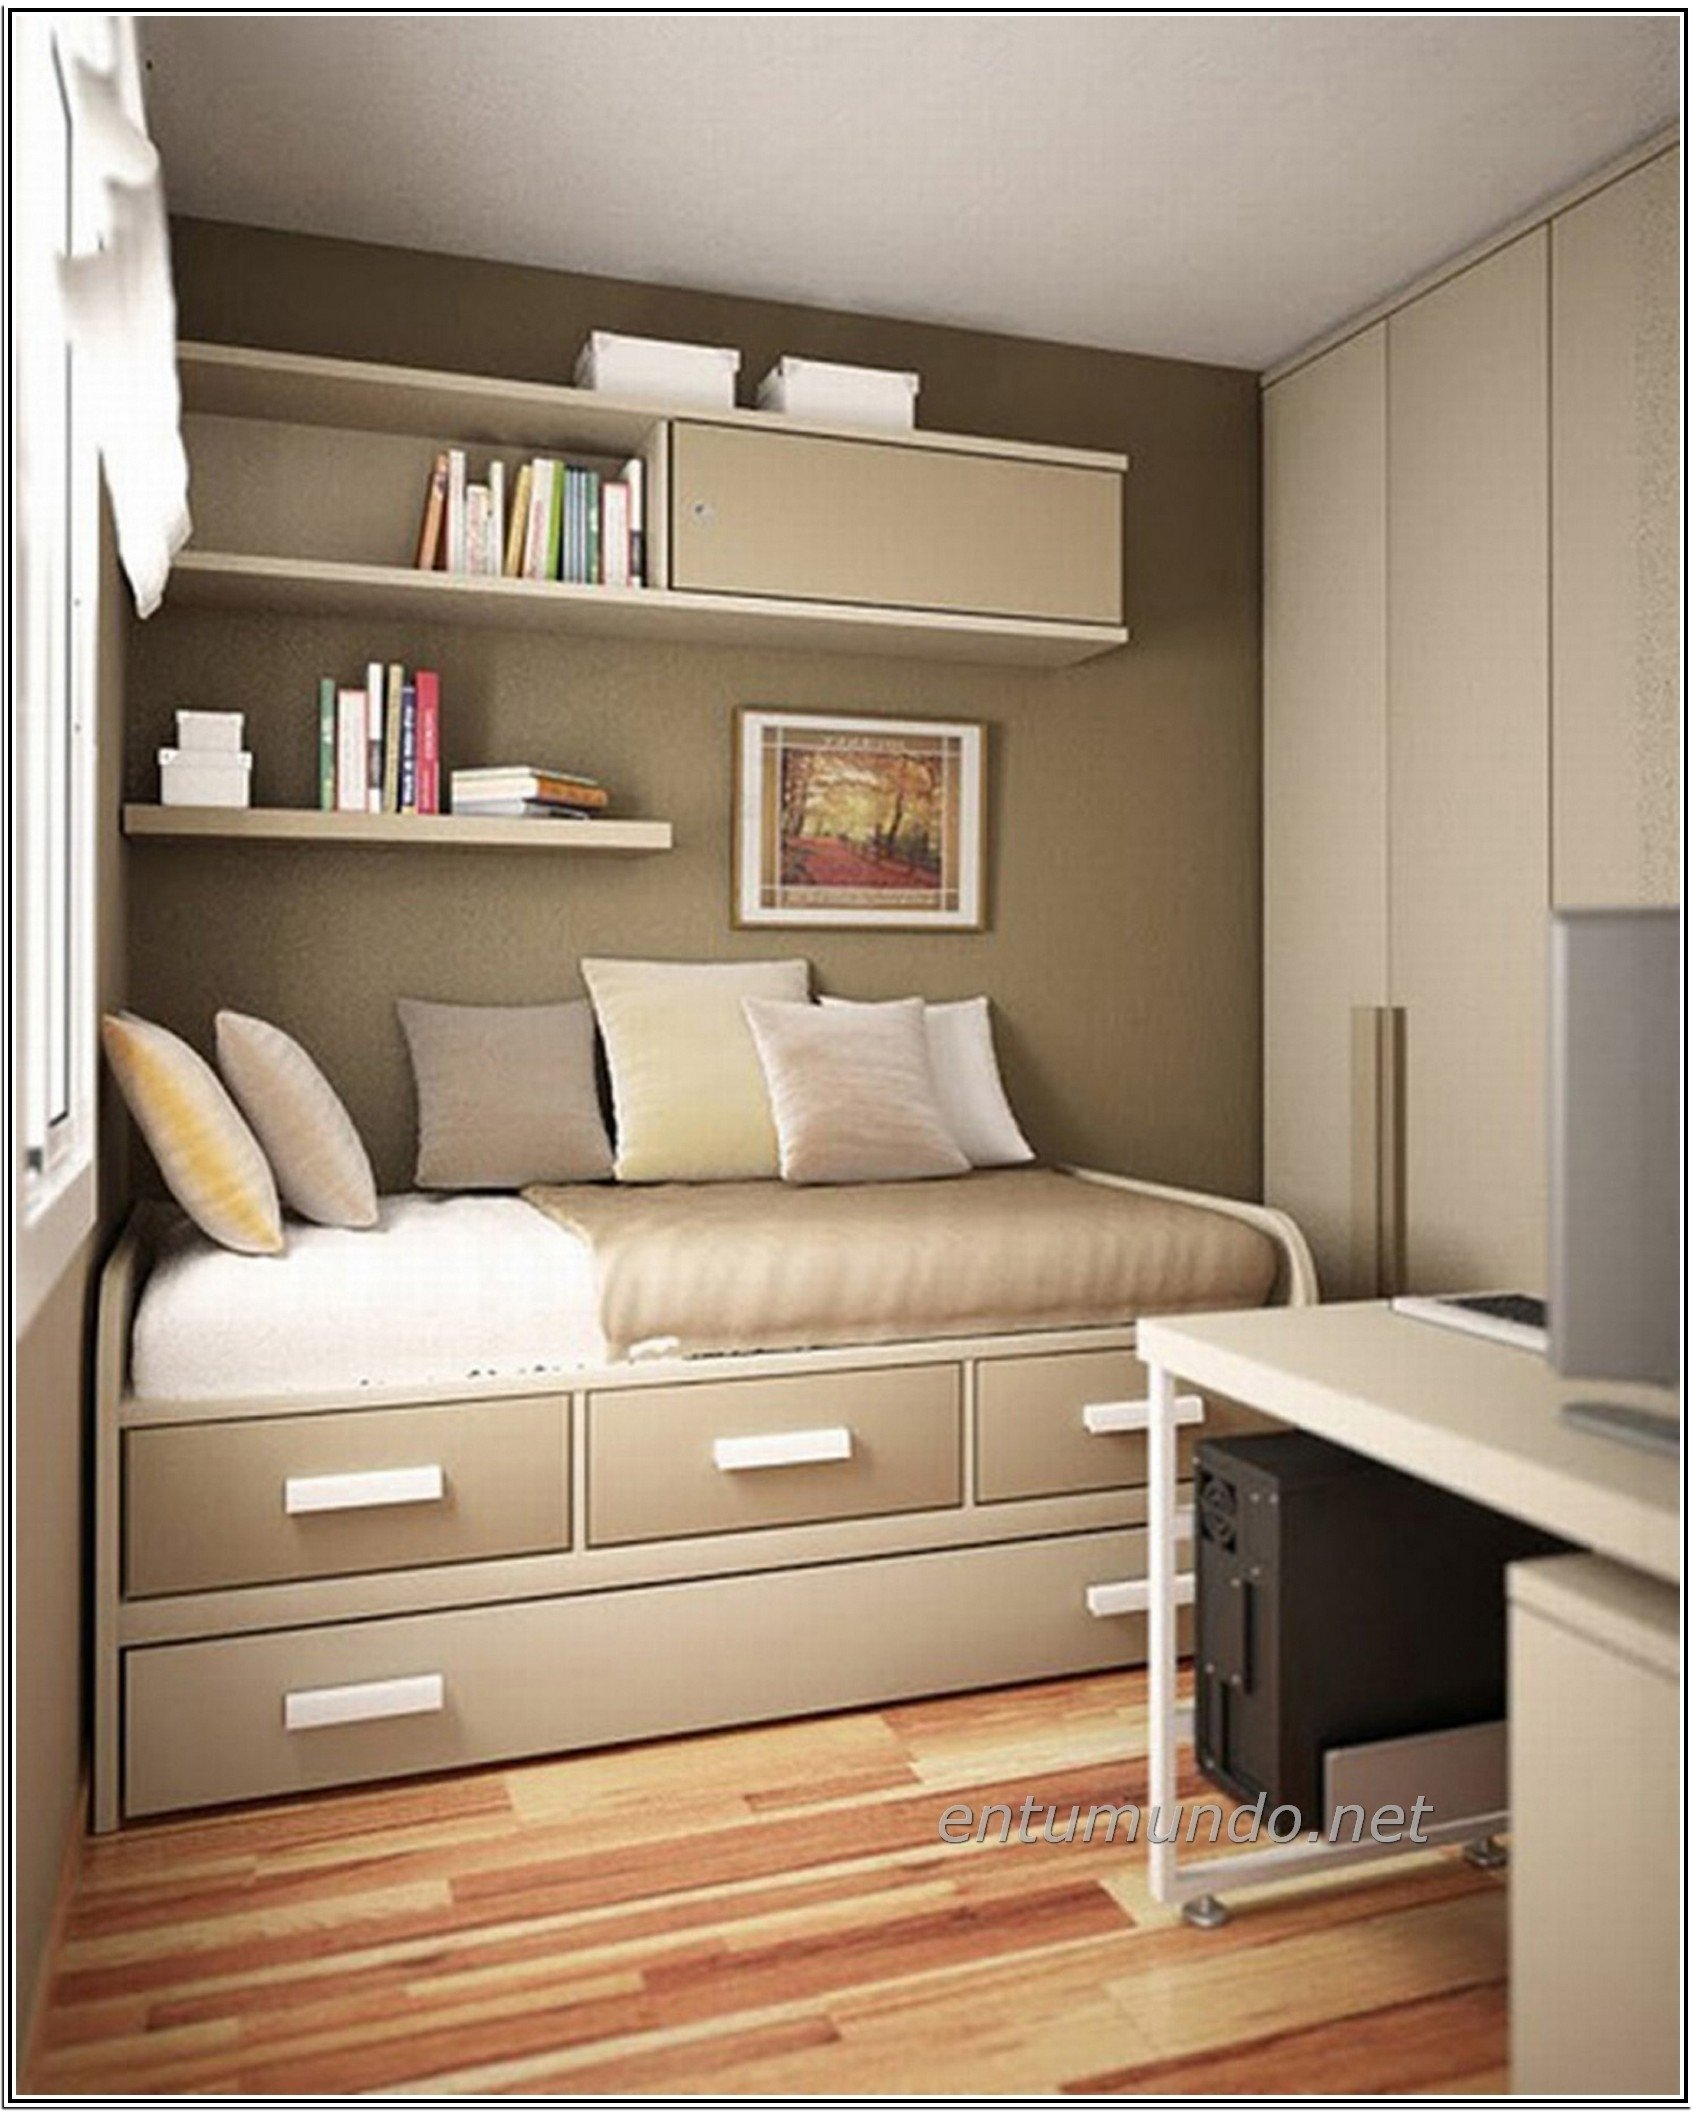 10 Perfect Space Saving Ideas For Small Homes space saving storage ideas for small apartment bedroom living 2020